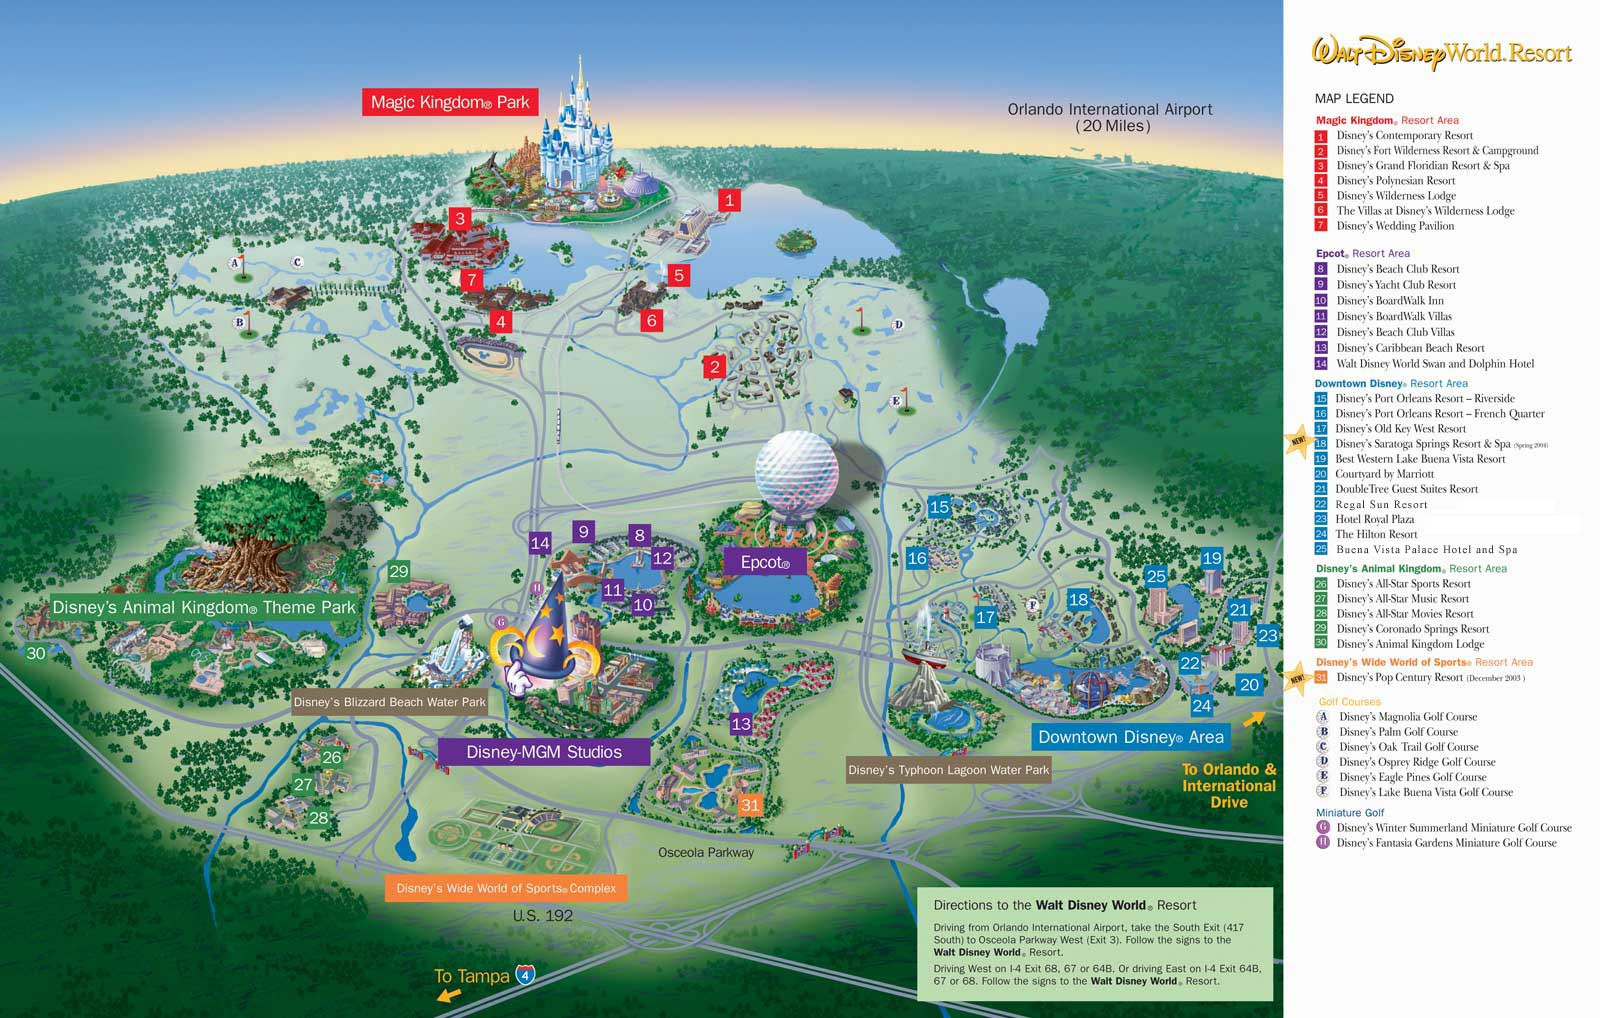 Map of Walt Disney World Resort